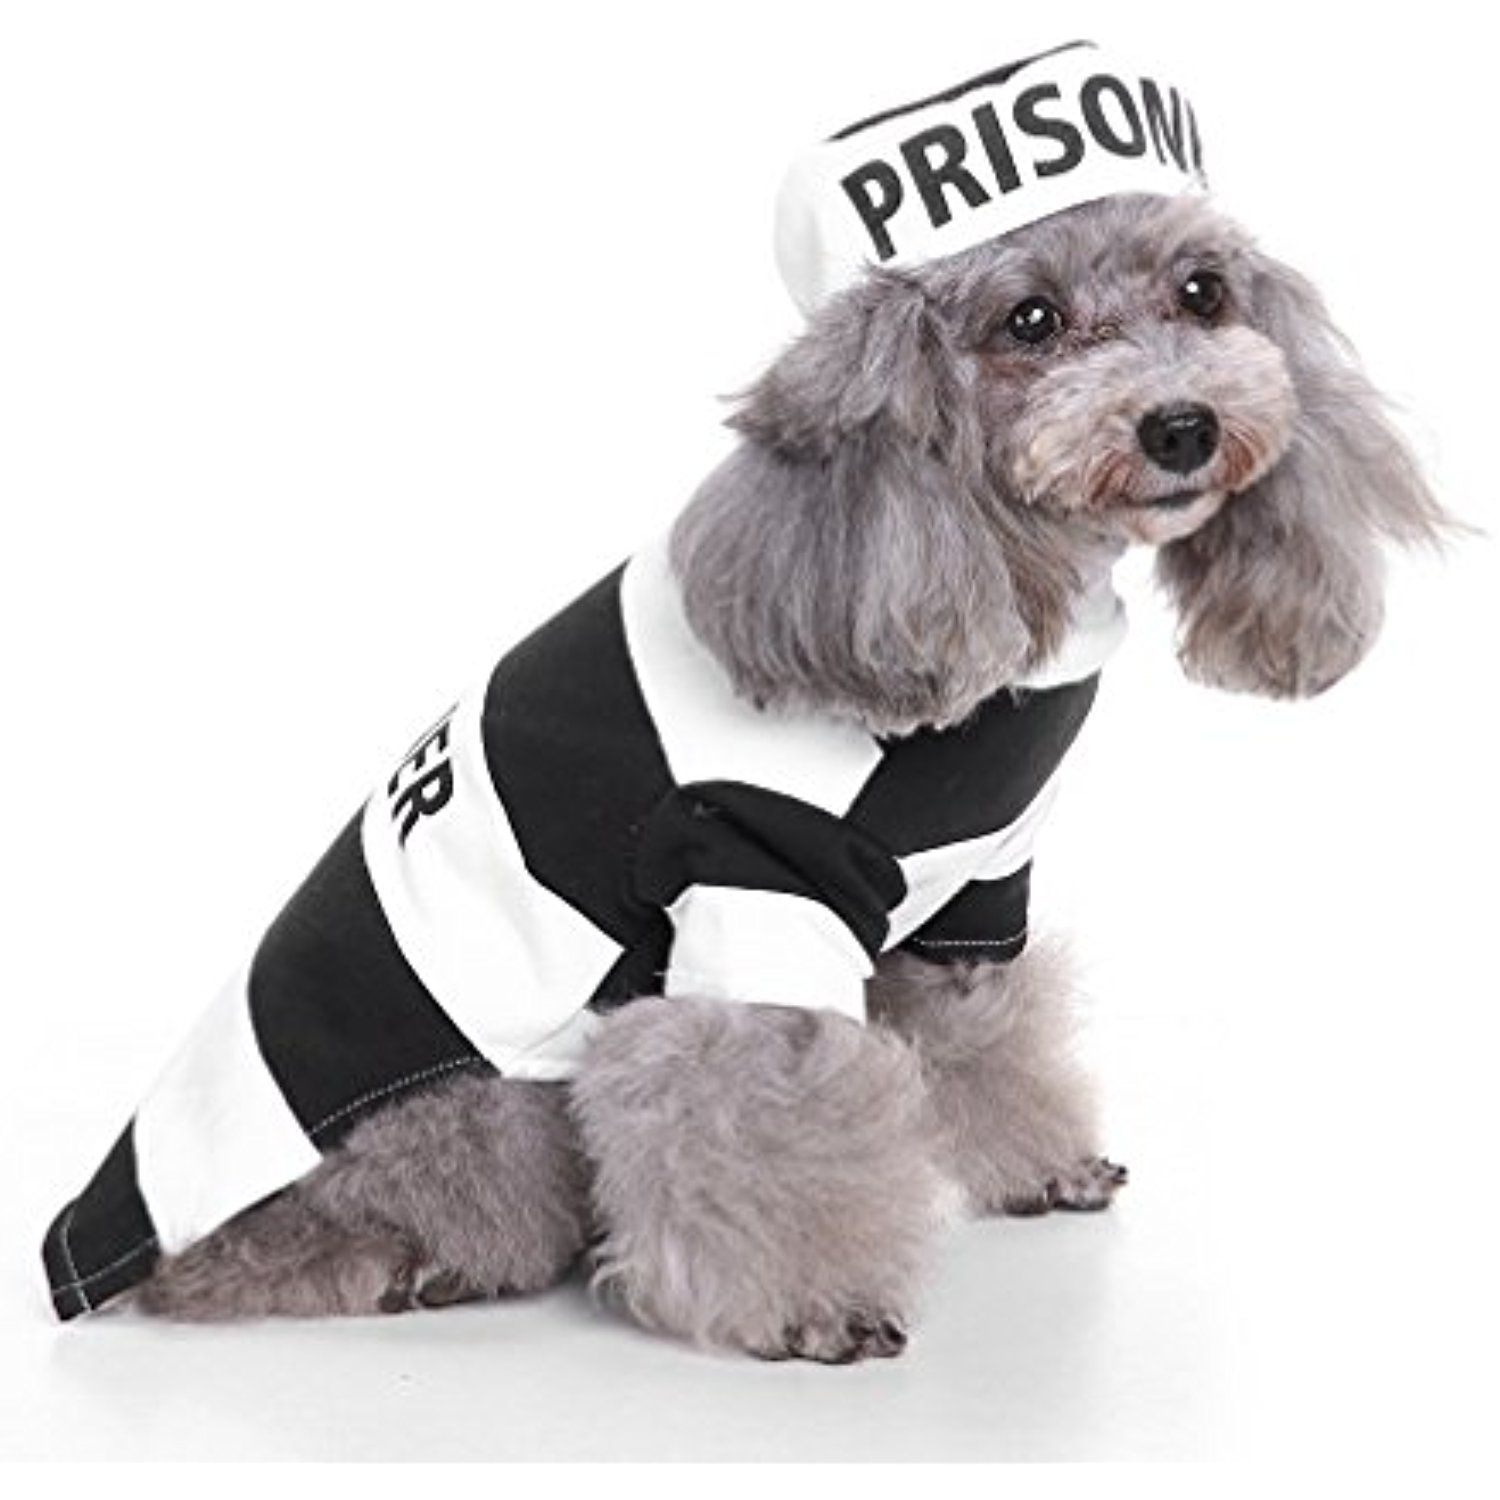 Ranphy Pooch Prisoner Dog Pet Halloween Costume Stripes Shirt Puppy Outfit Chihuahua Dog Costumes Halloween Small Pet Halloween Costumes Christmas Pet Clothes